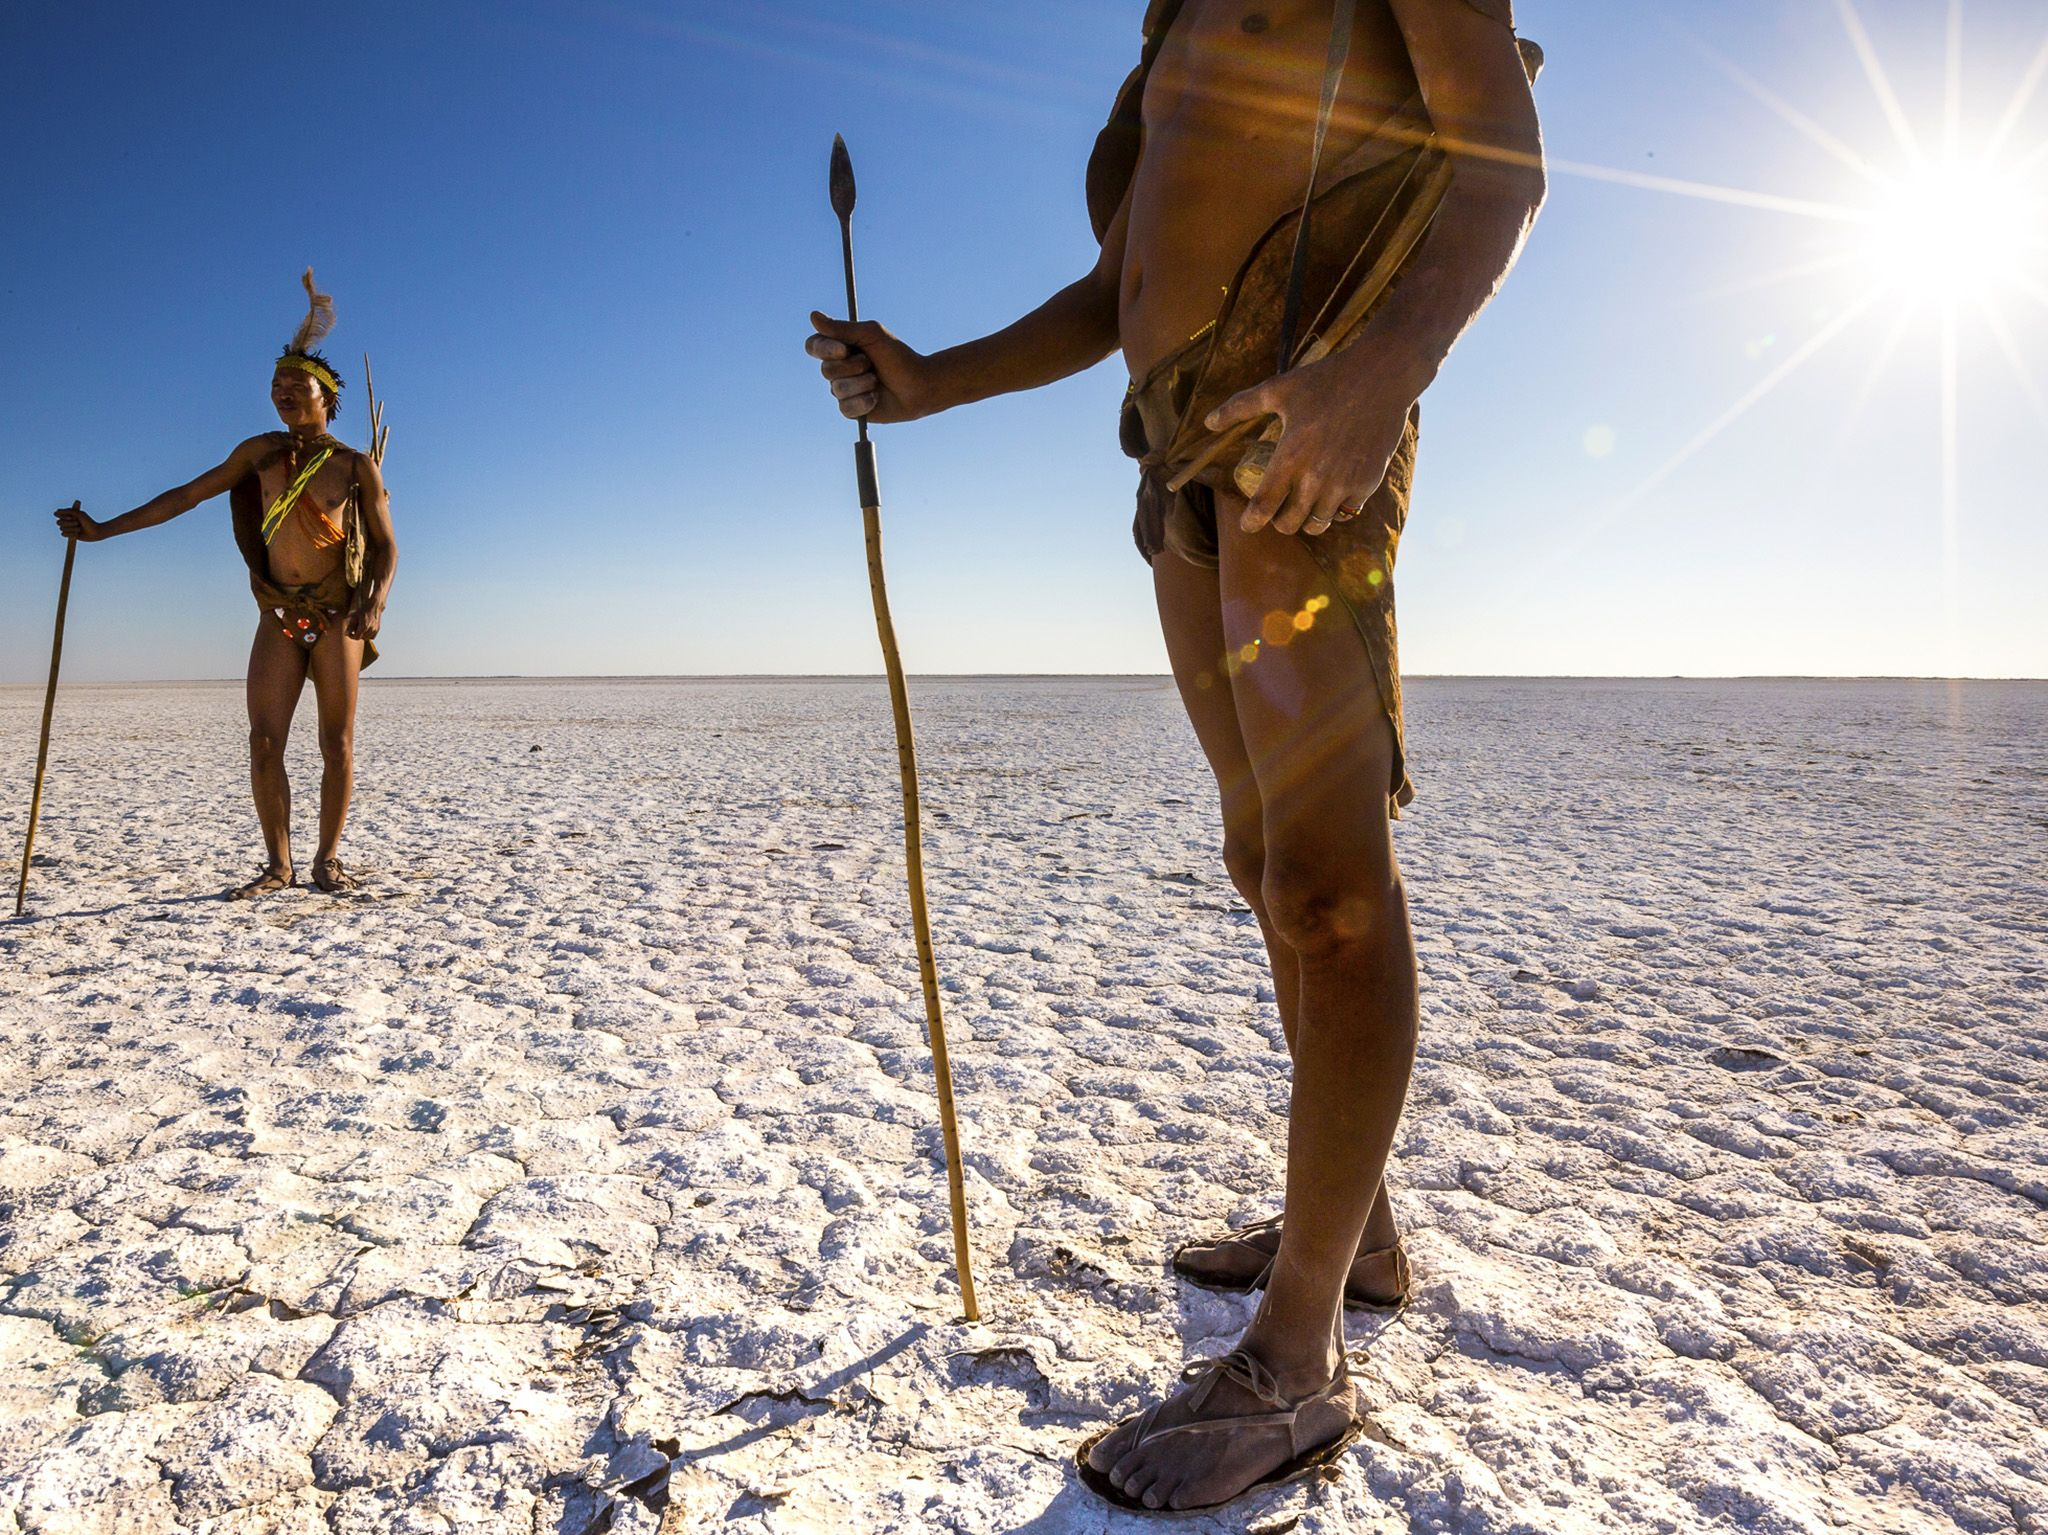 Botswana:  Xoma Xkgao and Xoma Xwii traverse the Makgadikgadi pans as a bush walk for tourists... [Photo of the day - January 2019]